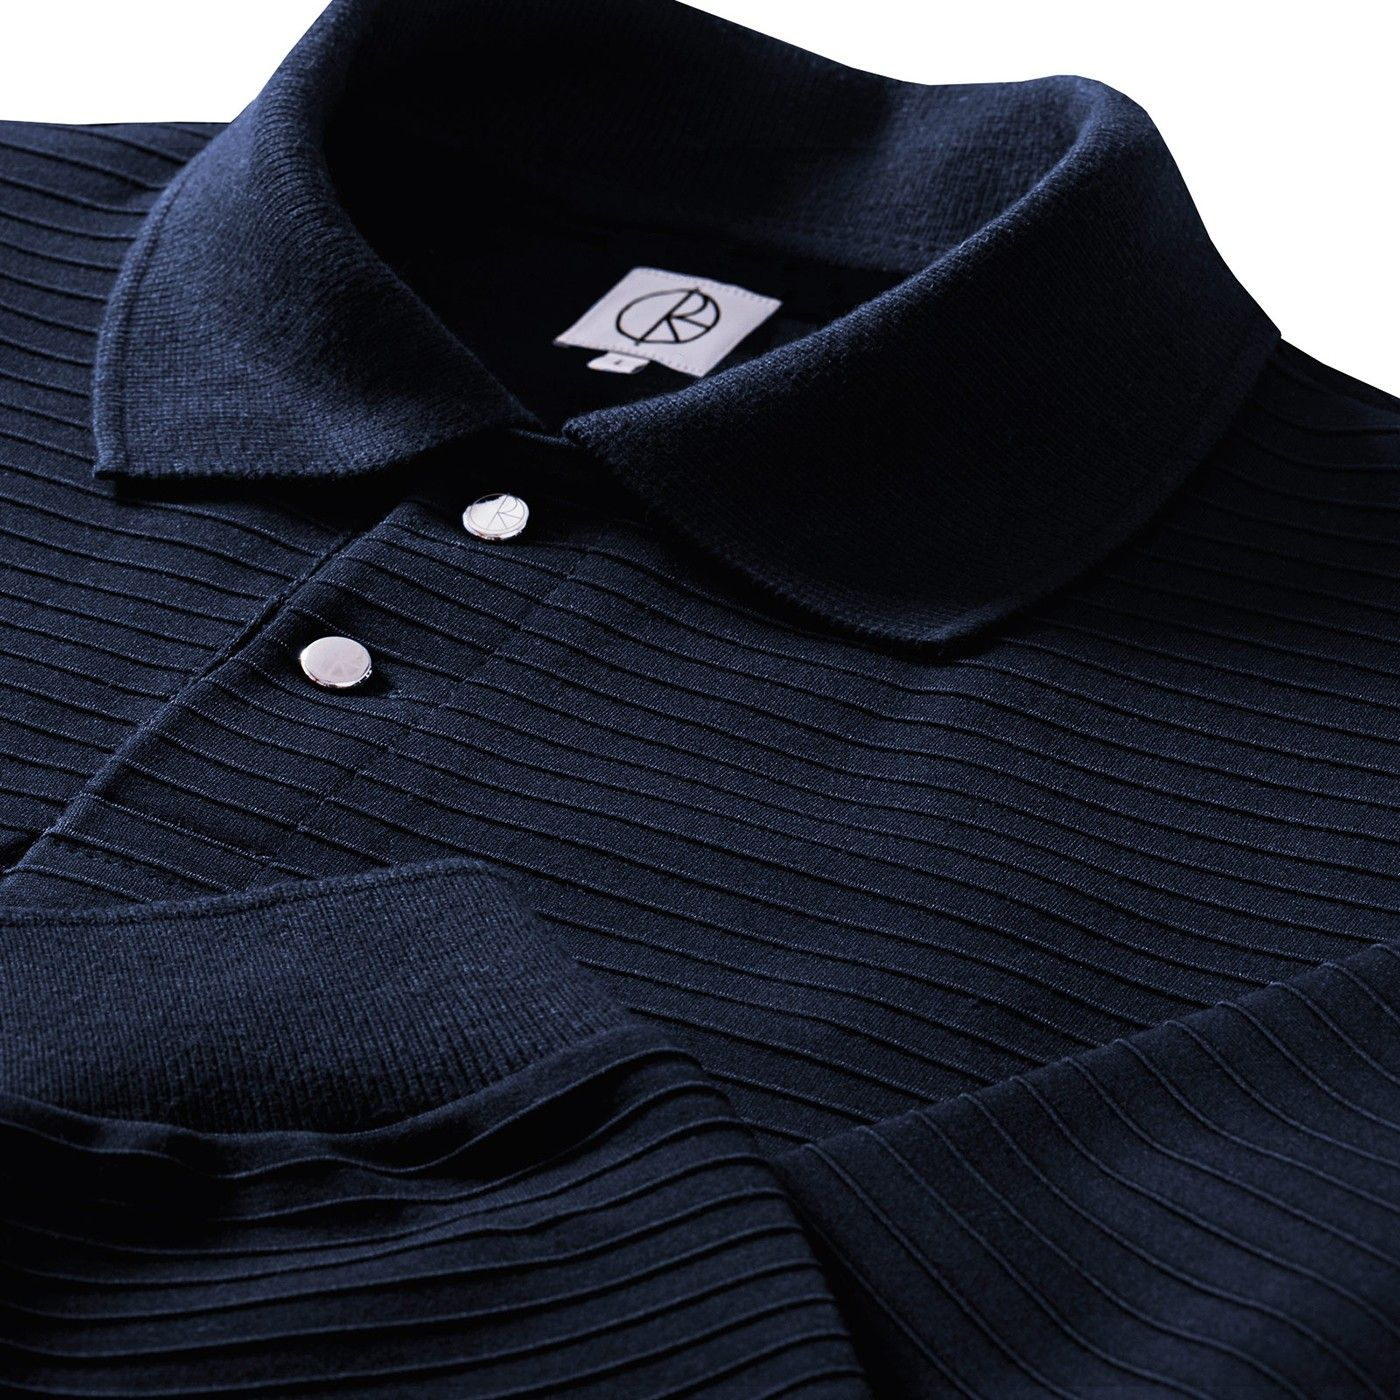 Striped Pique Shirt in Navy by Polar Skate Co